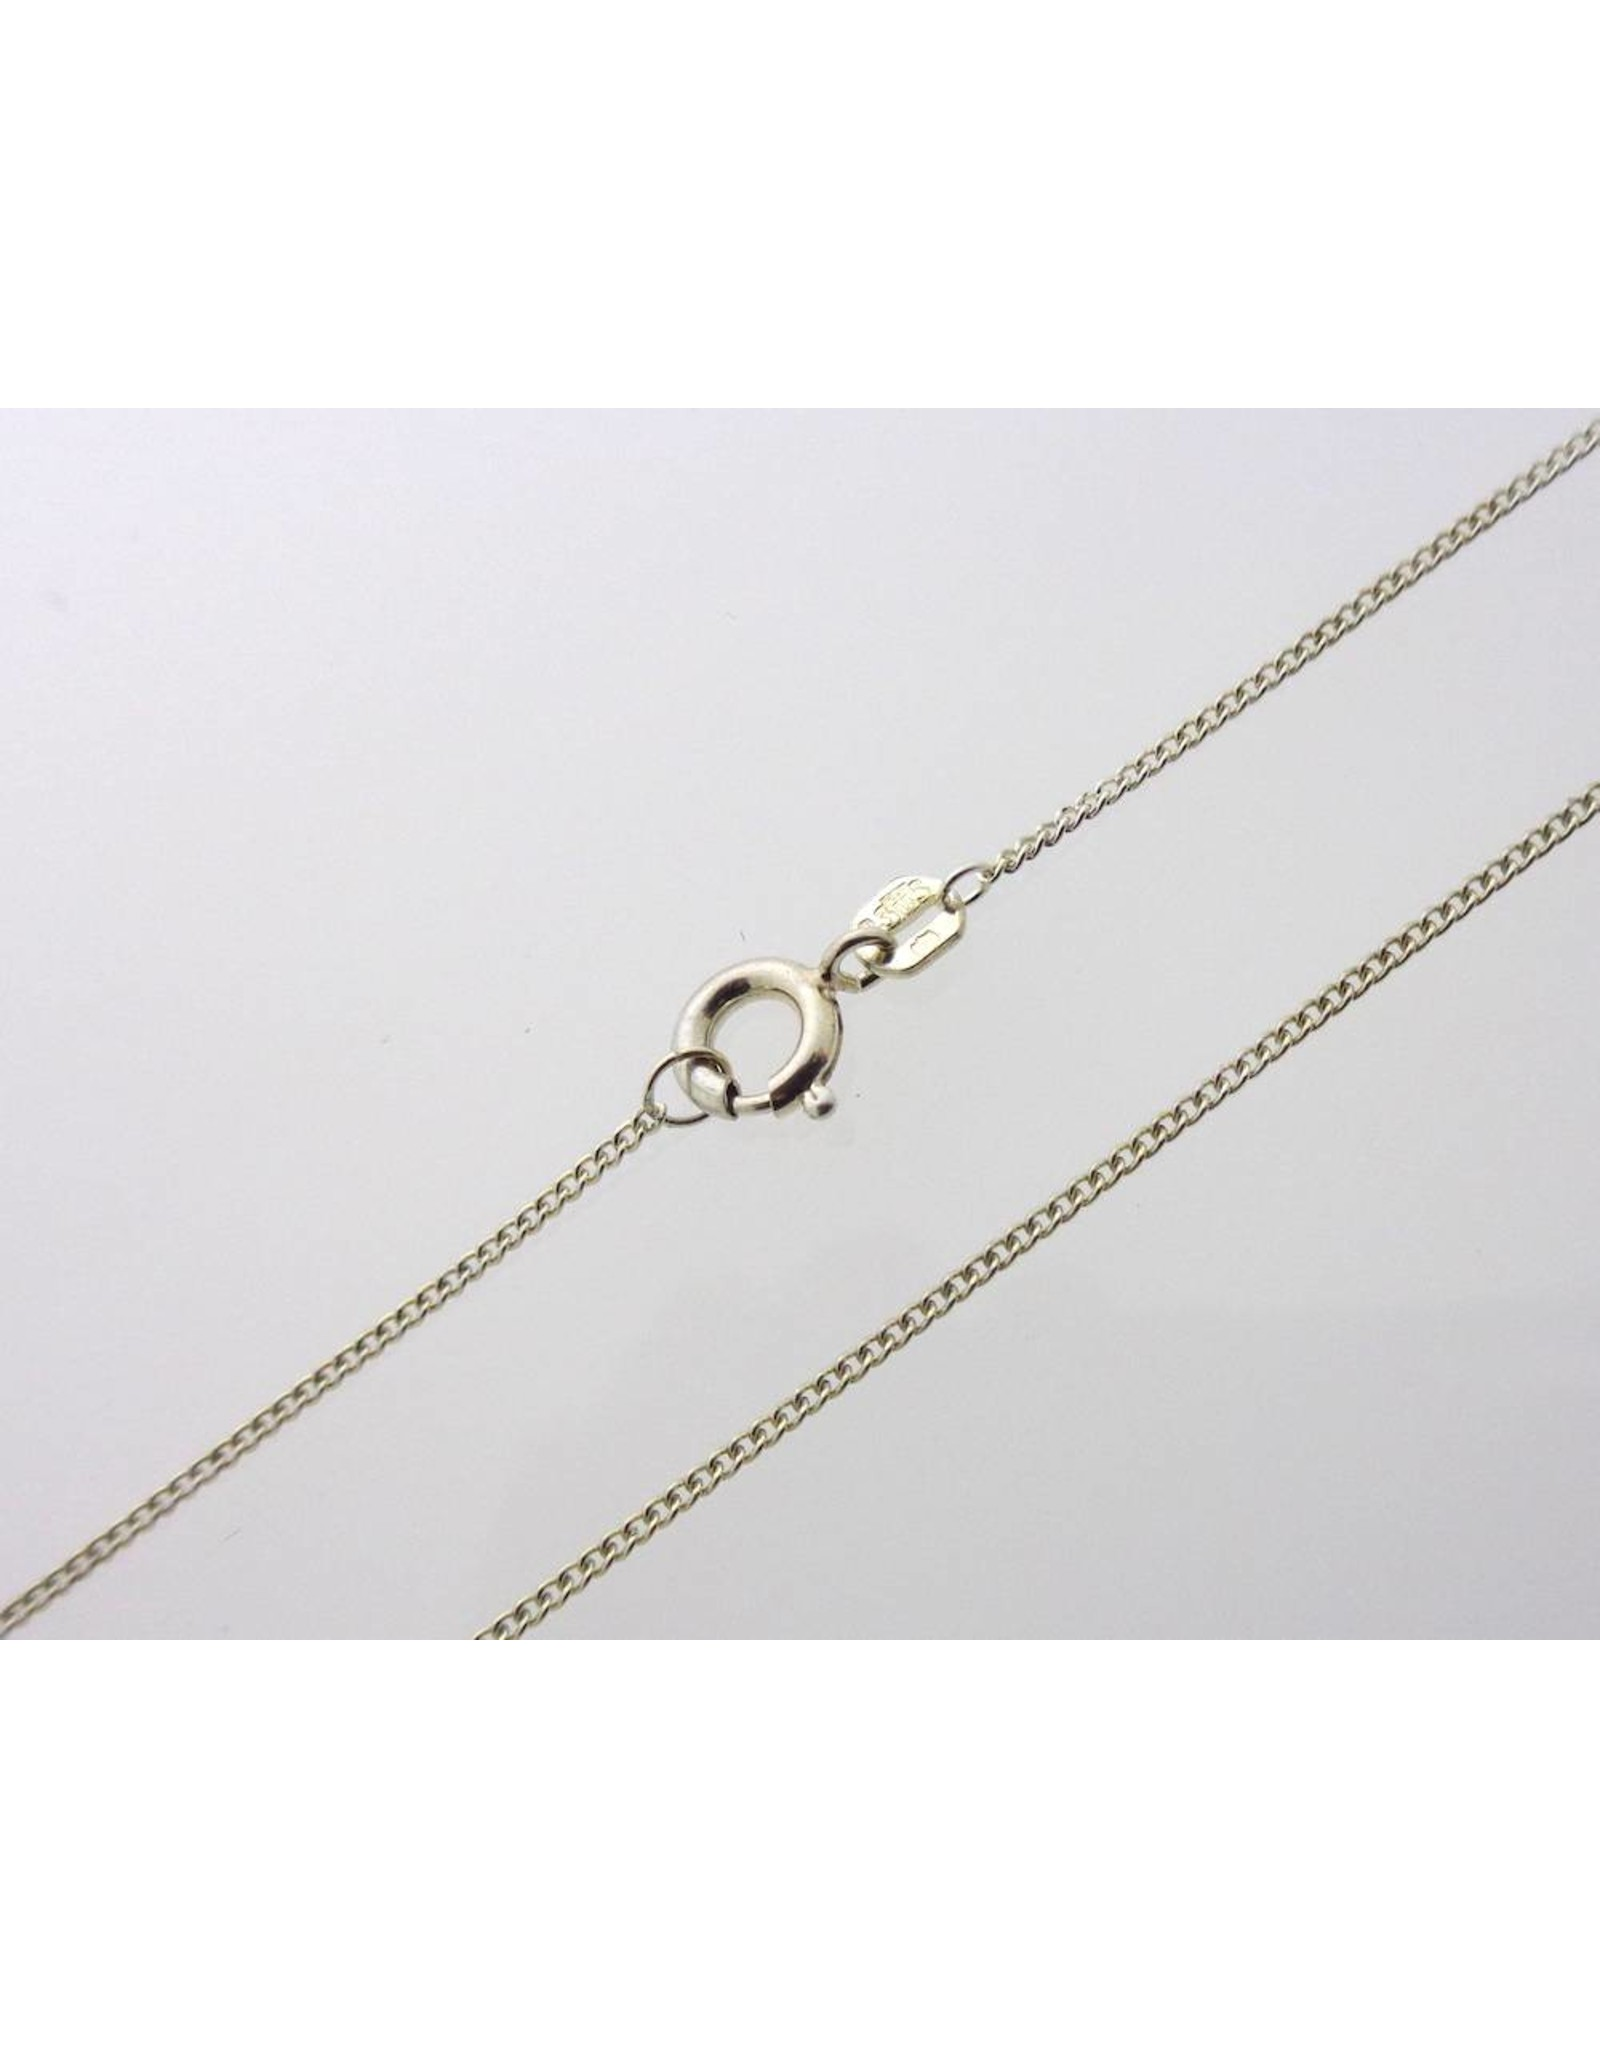 Silver necklace - 1 mm (835)